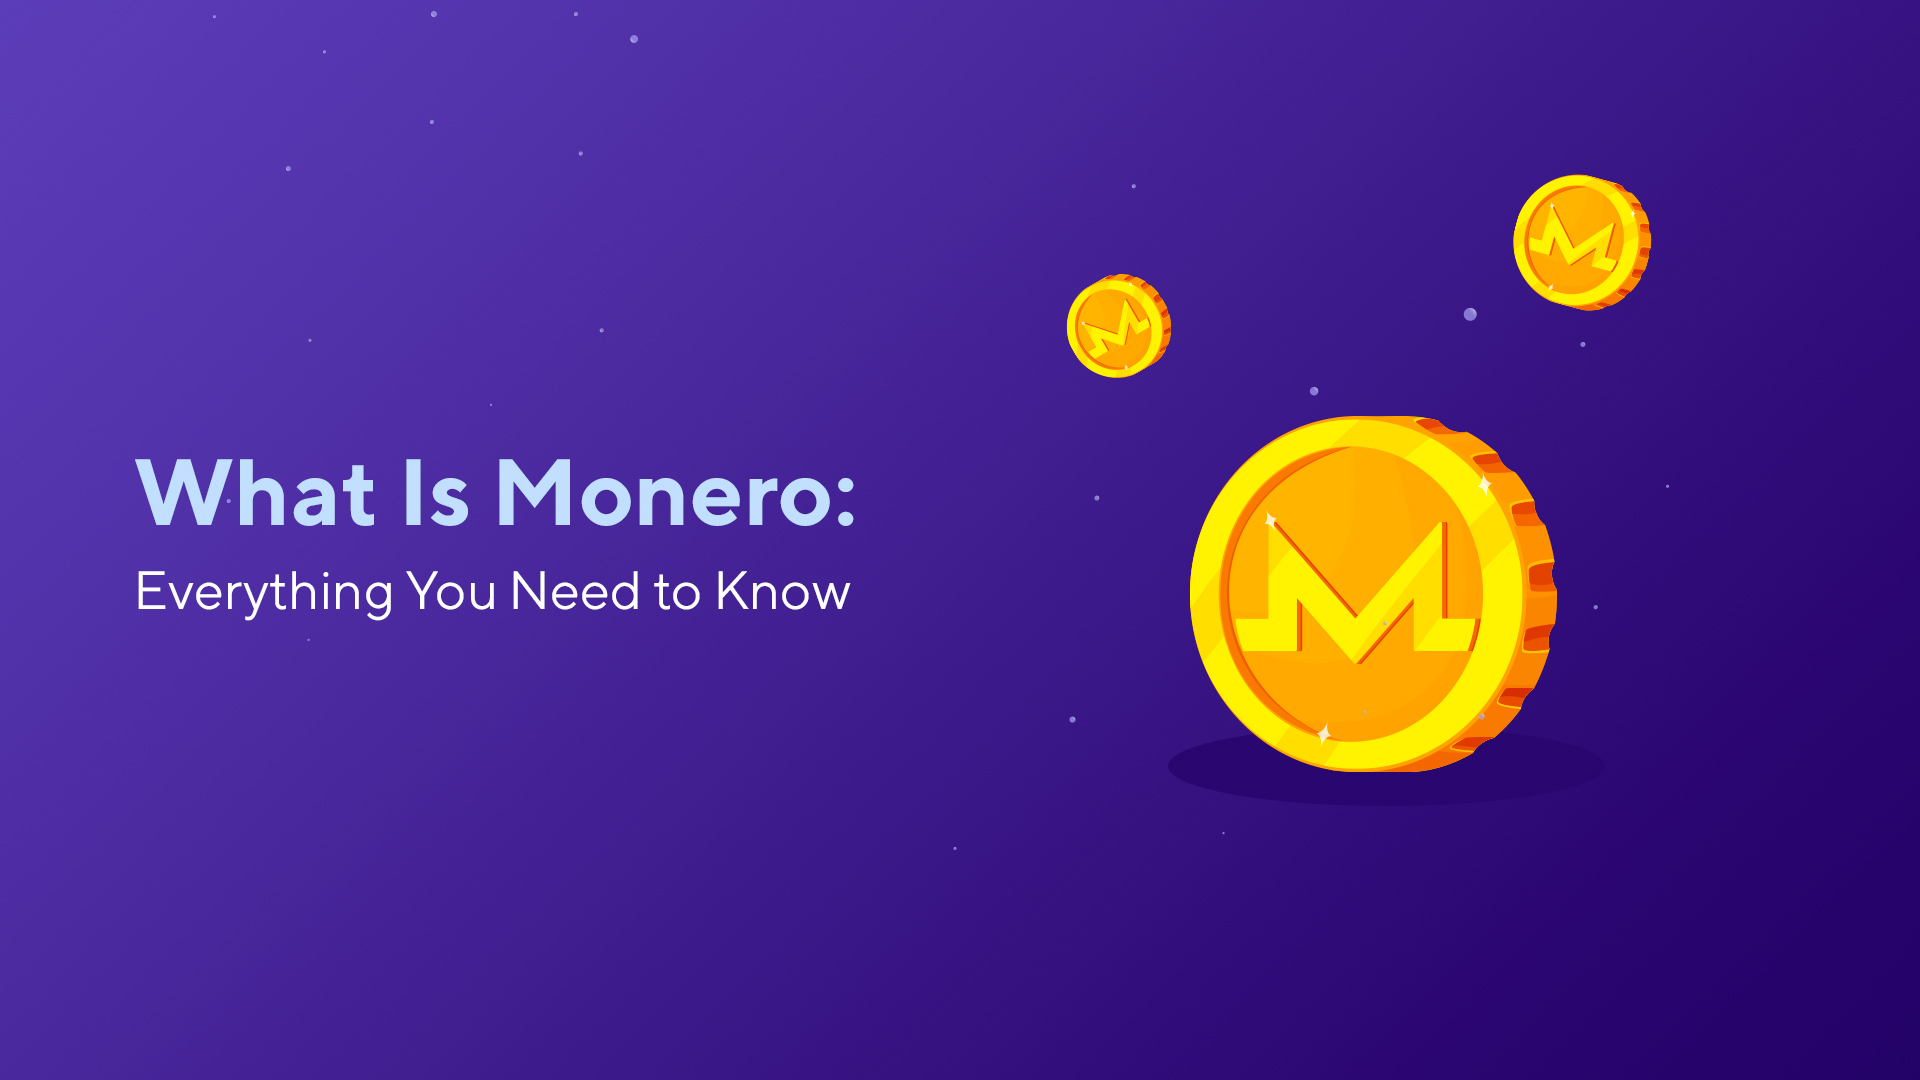 What Is Monero: Everything You Need to Know